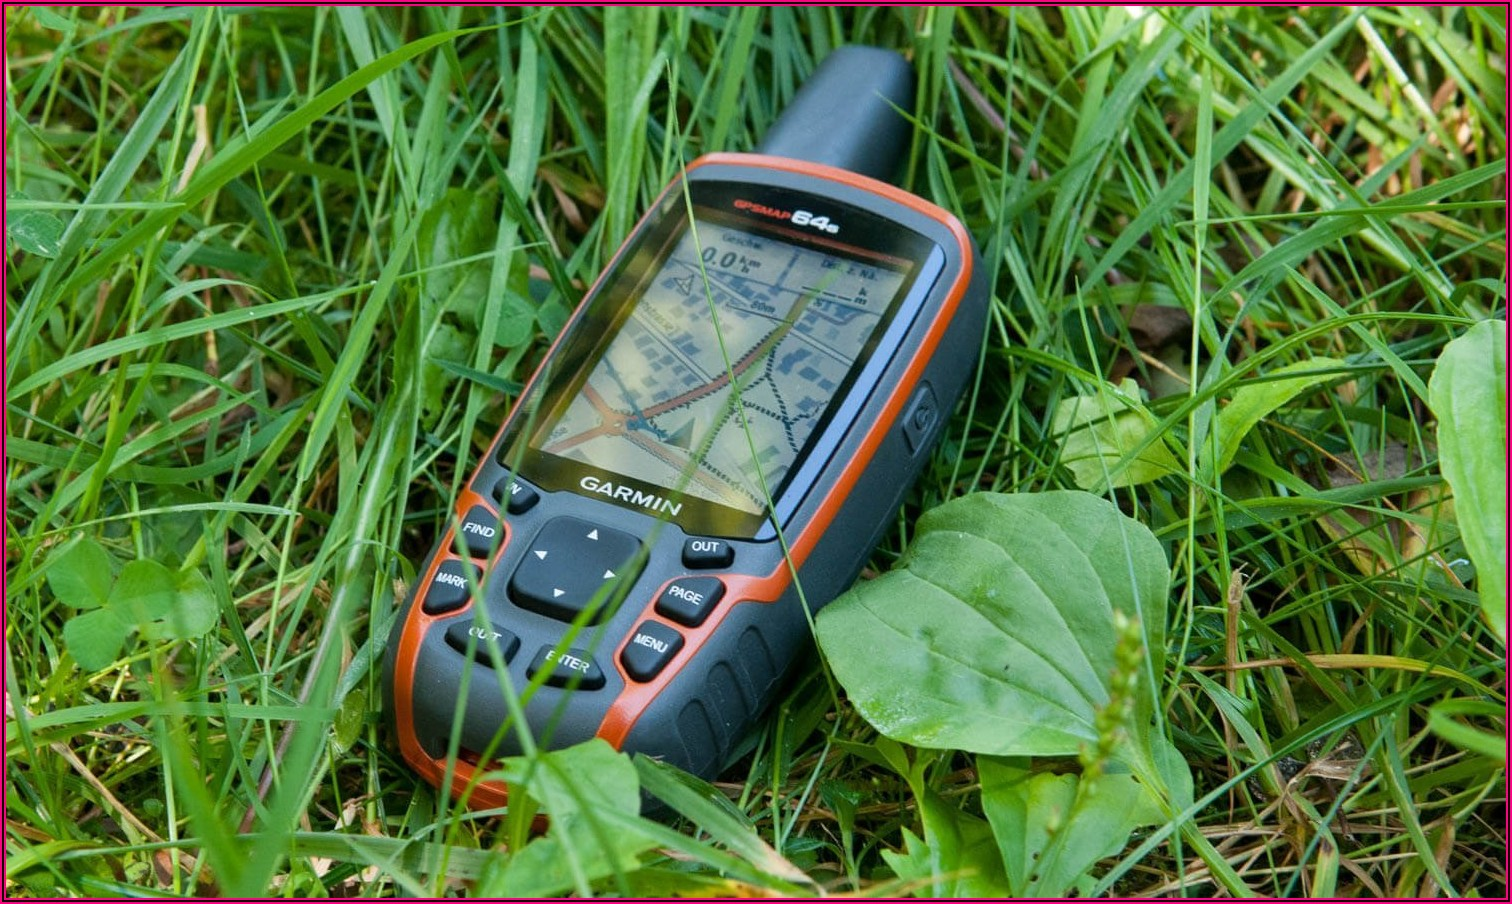 Garmin Map 64st Manual